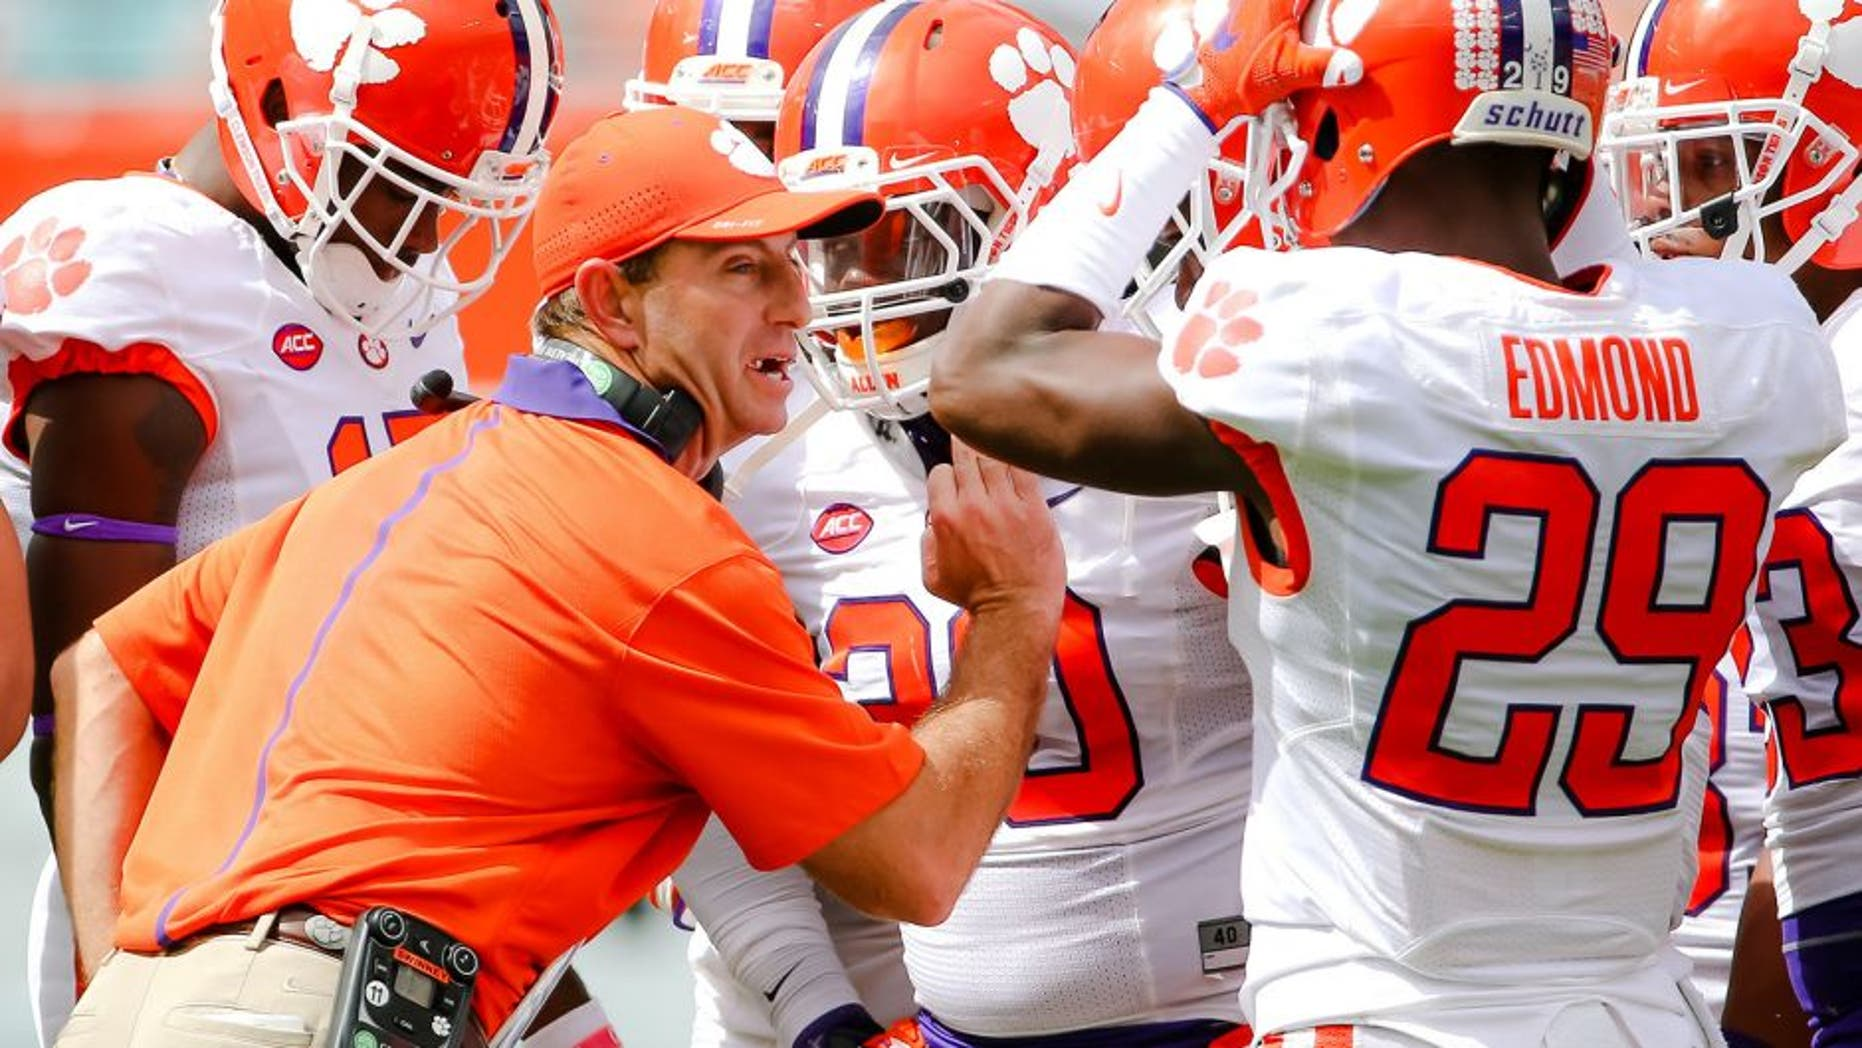 Oct 24, 2015; Miami Gardens, FL, USA; Clemson Tigers head coach Dabo Swinney talks with his players during the first half against the Miami Hurricanes at Sun Life Stadium. Mandatory Credit: Steve Mitchell-USA TODAY Sports